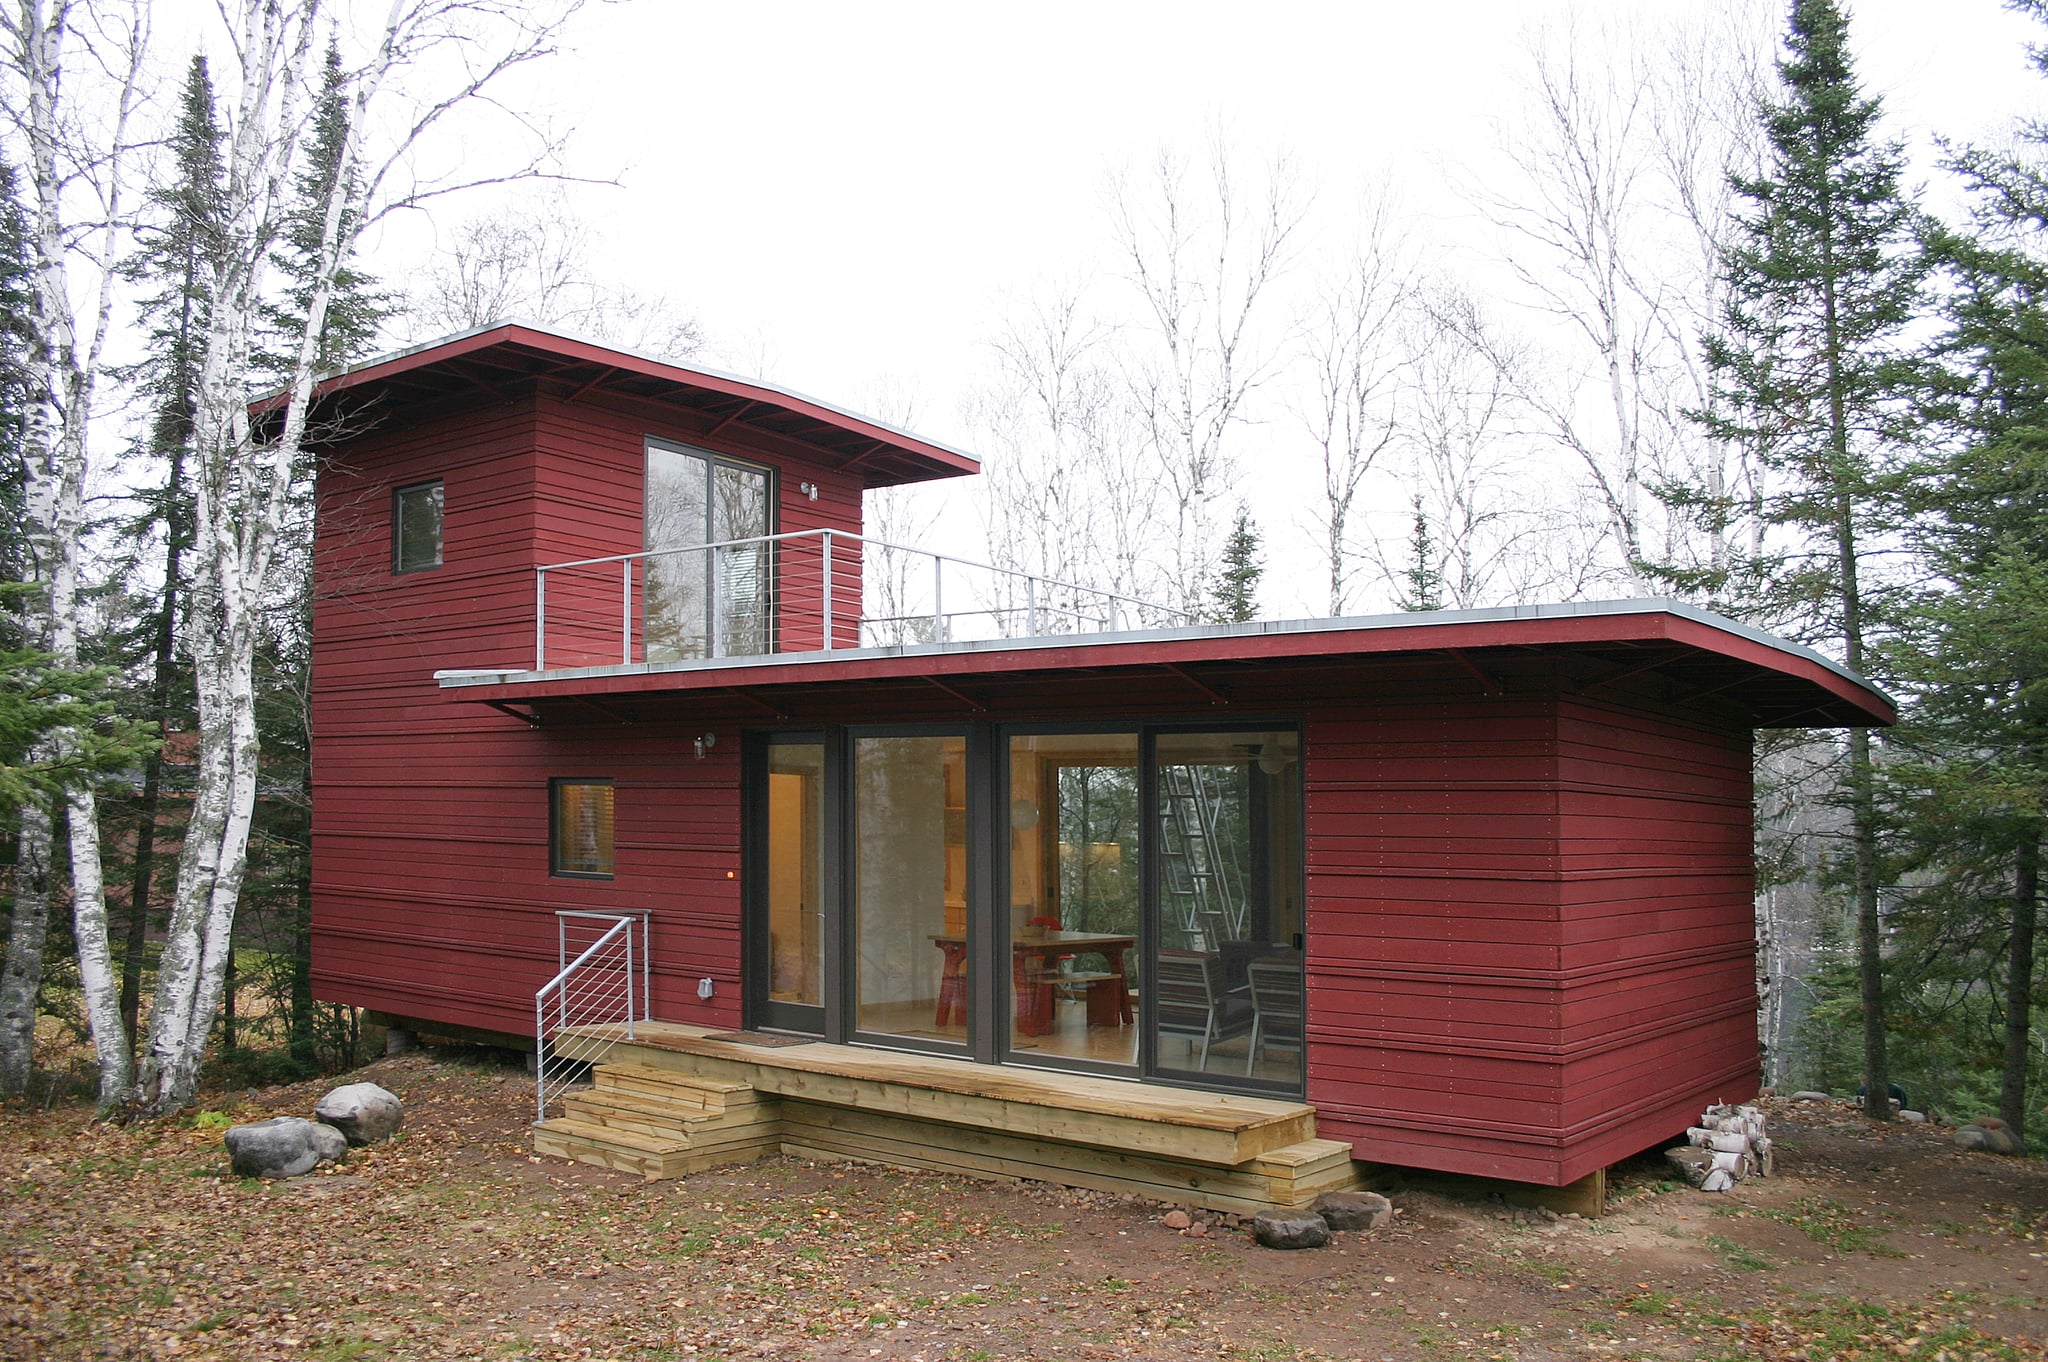 The McGlasson weeHouse boasts a rooftop deck, gorgeous forest views, and a price far below $200,000 — talk about a dream home! The gorgeous red exterior is just the start of this tiny dwelling's beautiful features; it also includes a modern kitchen, huge windows, and panoramic views of evergreen trees from its back deck.